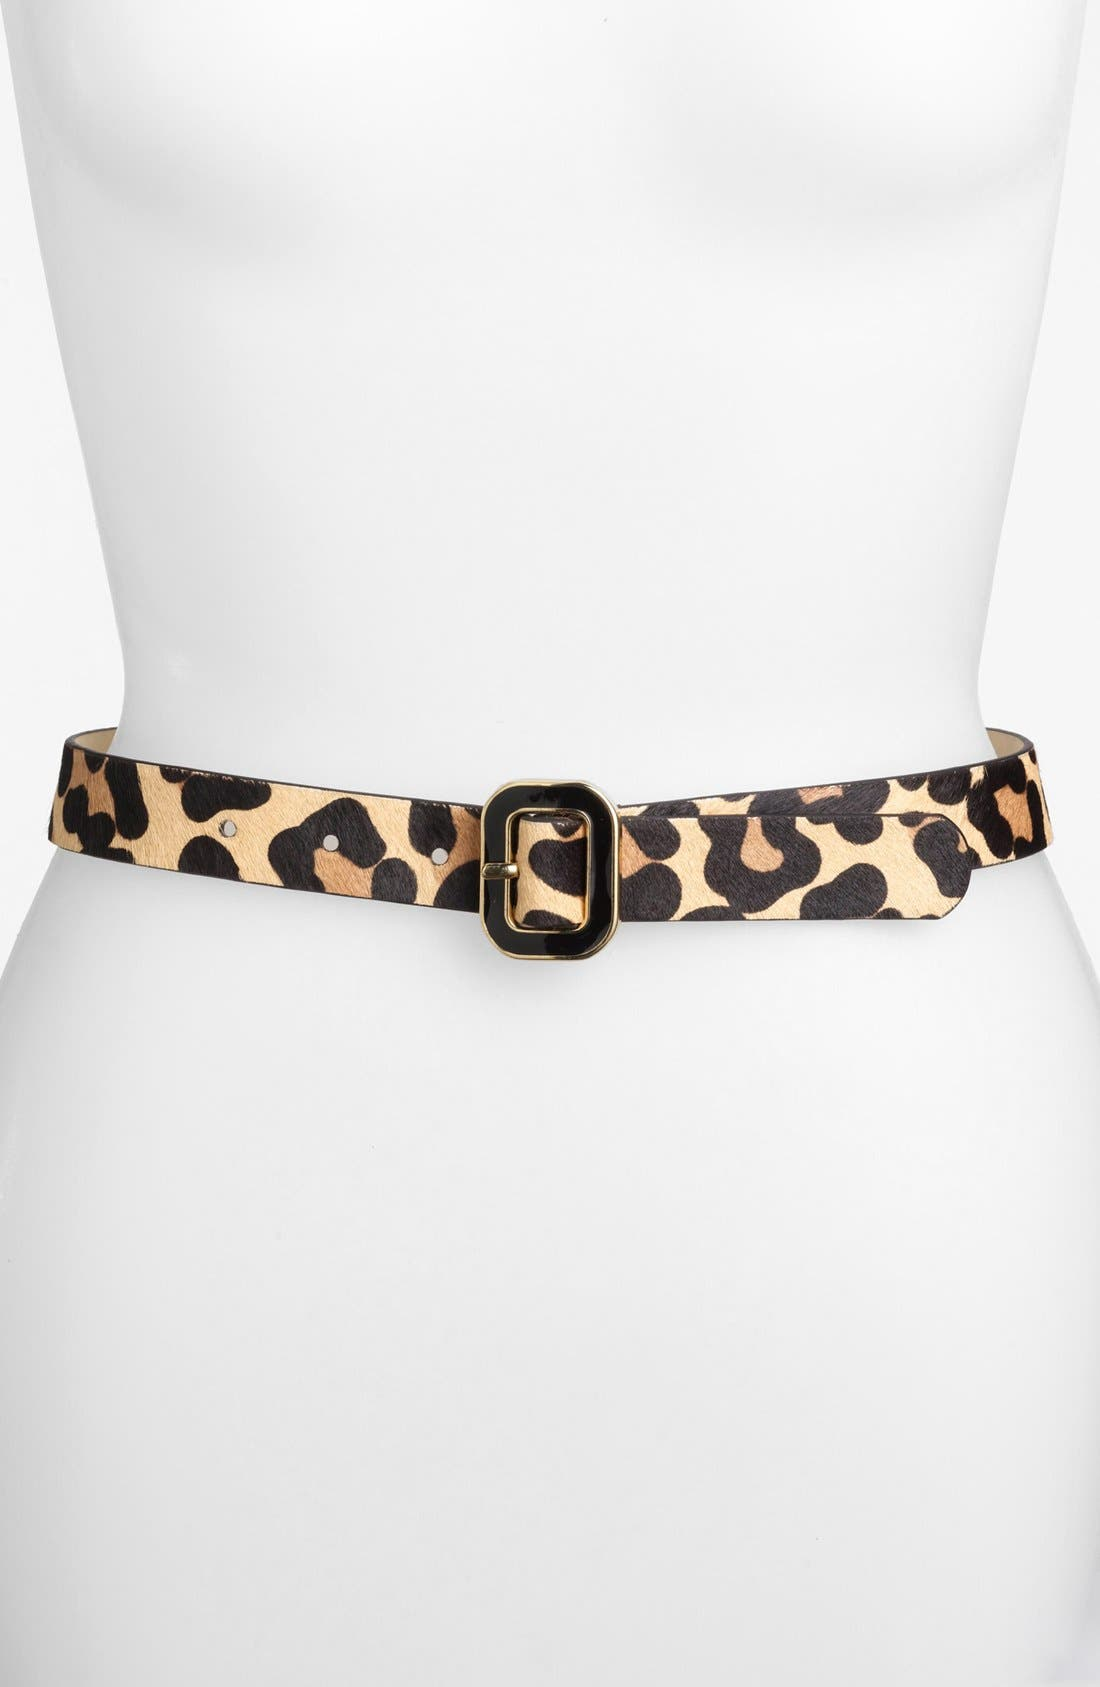 Alternate Image 1 Selected - Another Line Leopard Print Calf Hair Belt